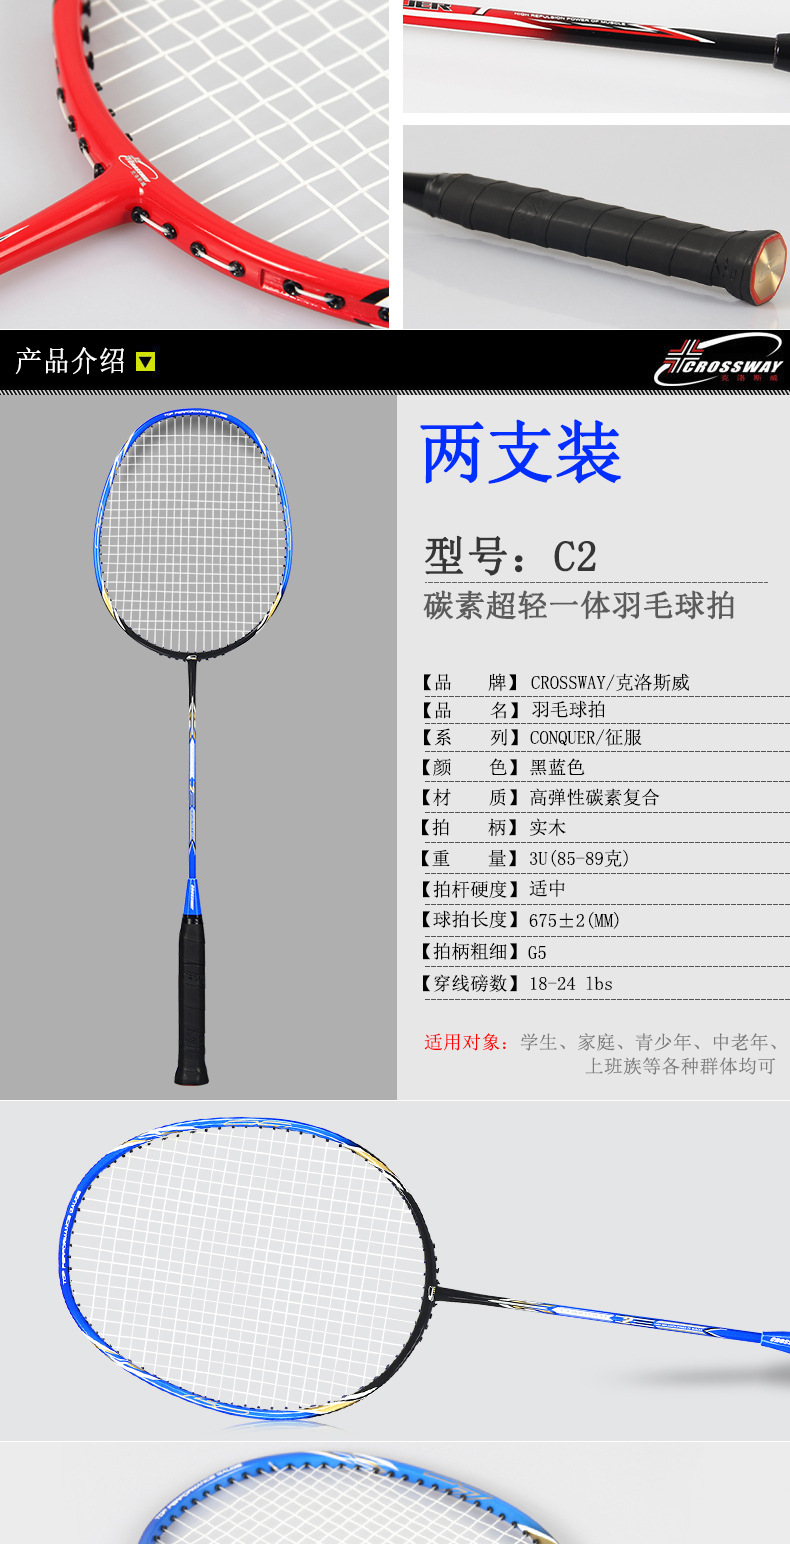 Crossway 2Pcs Best Doubles Match Badminton Rackets Carbon Smash Championships Shuttlecock Speedminton Racquets Equipment Kit Set 7